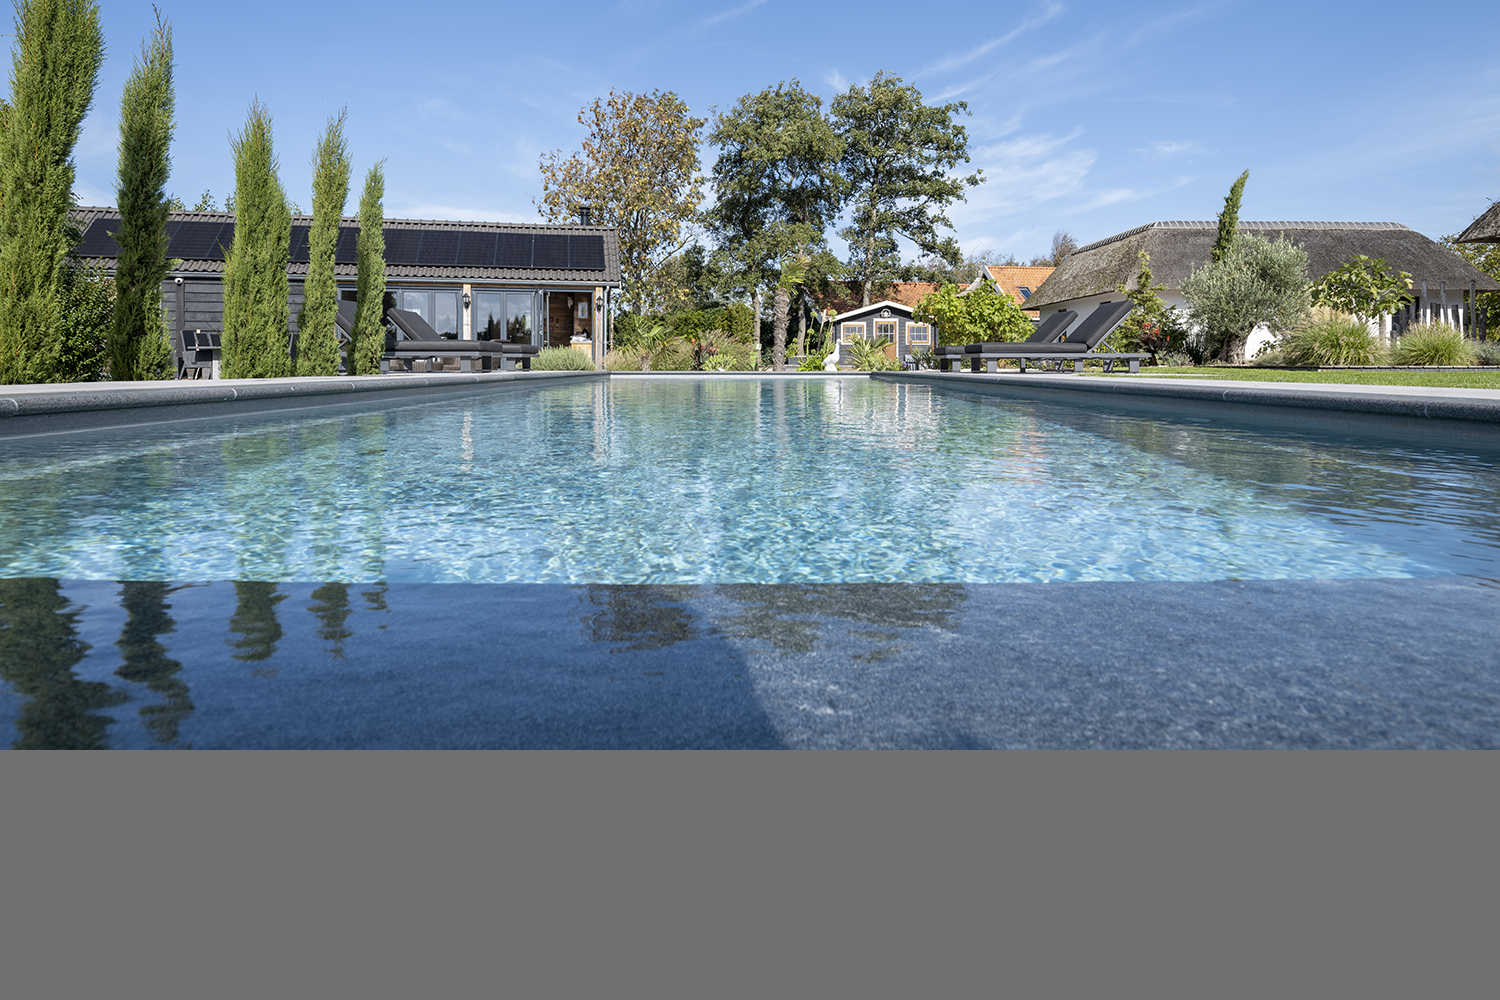 buitenzwembad, Compass Pools, The Art Of Living